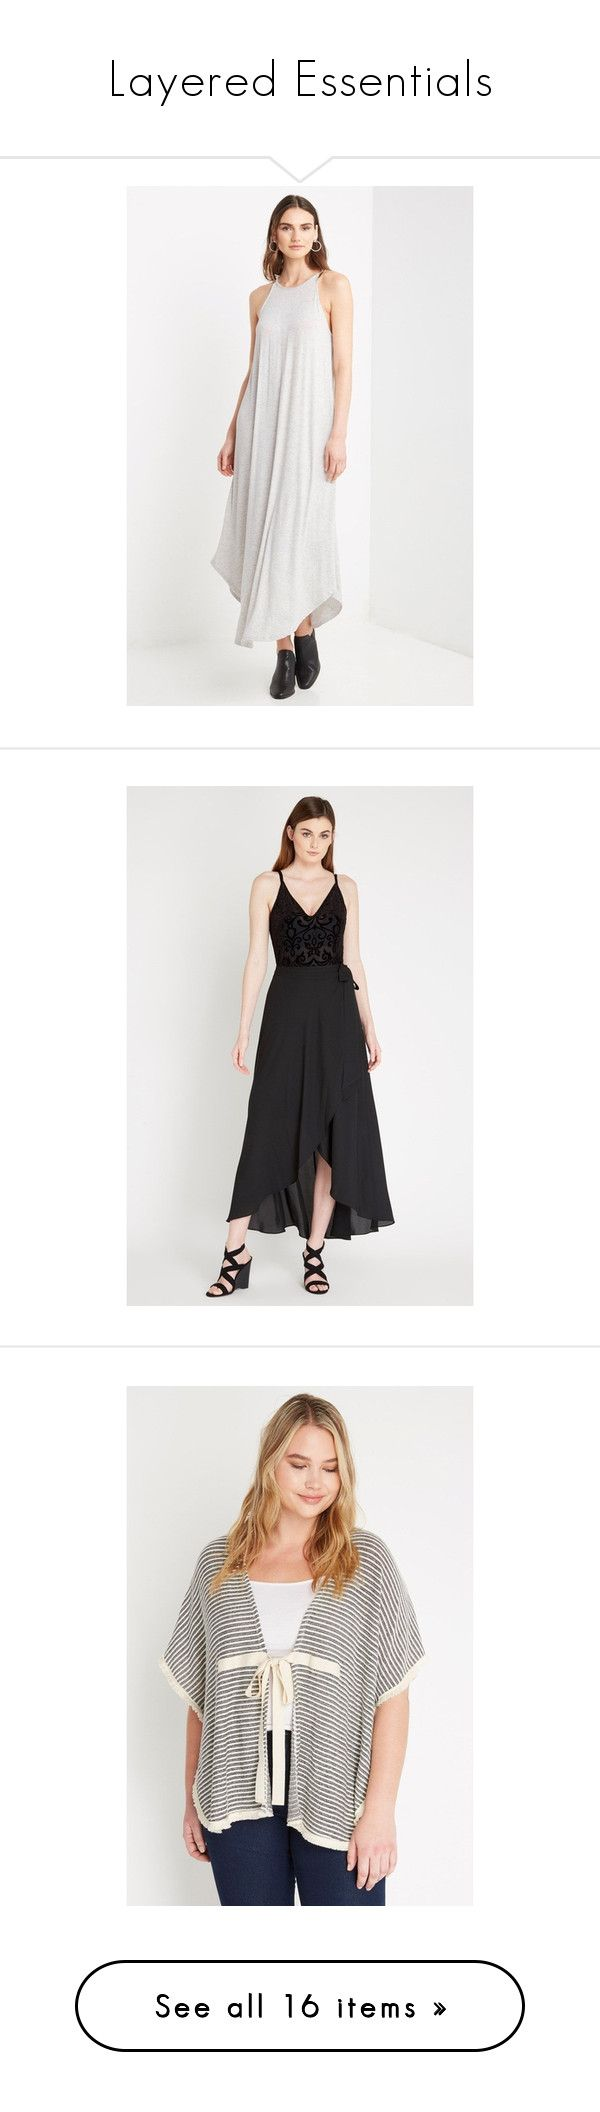 """""""Layered Essentials"""" by poshsquare on Polyvore featuring dresses, halter-neck maxi dresses, halter dress, halter-neck dress, halter neck maxi dress, maxi length dresses, skirts, maxi skirts, tulip maxi skirt and tulip skirts"""